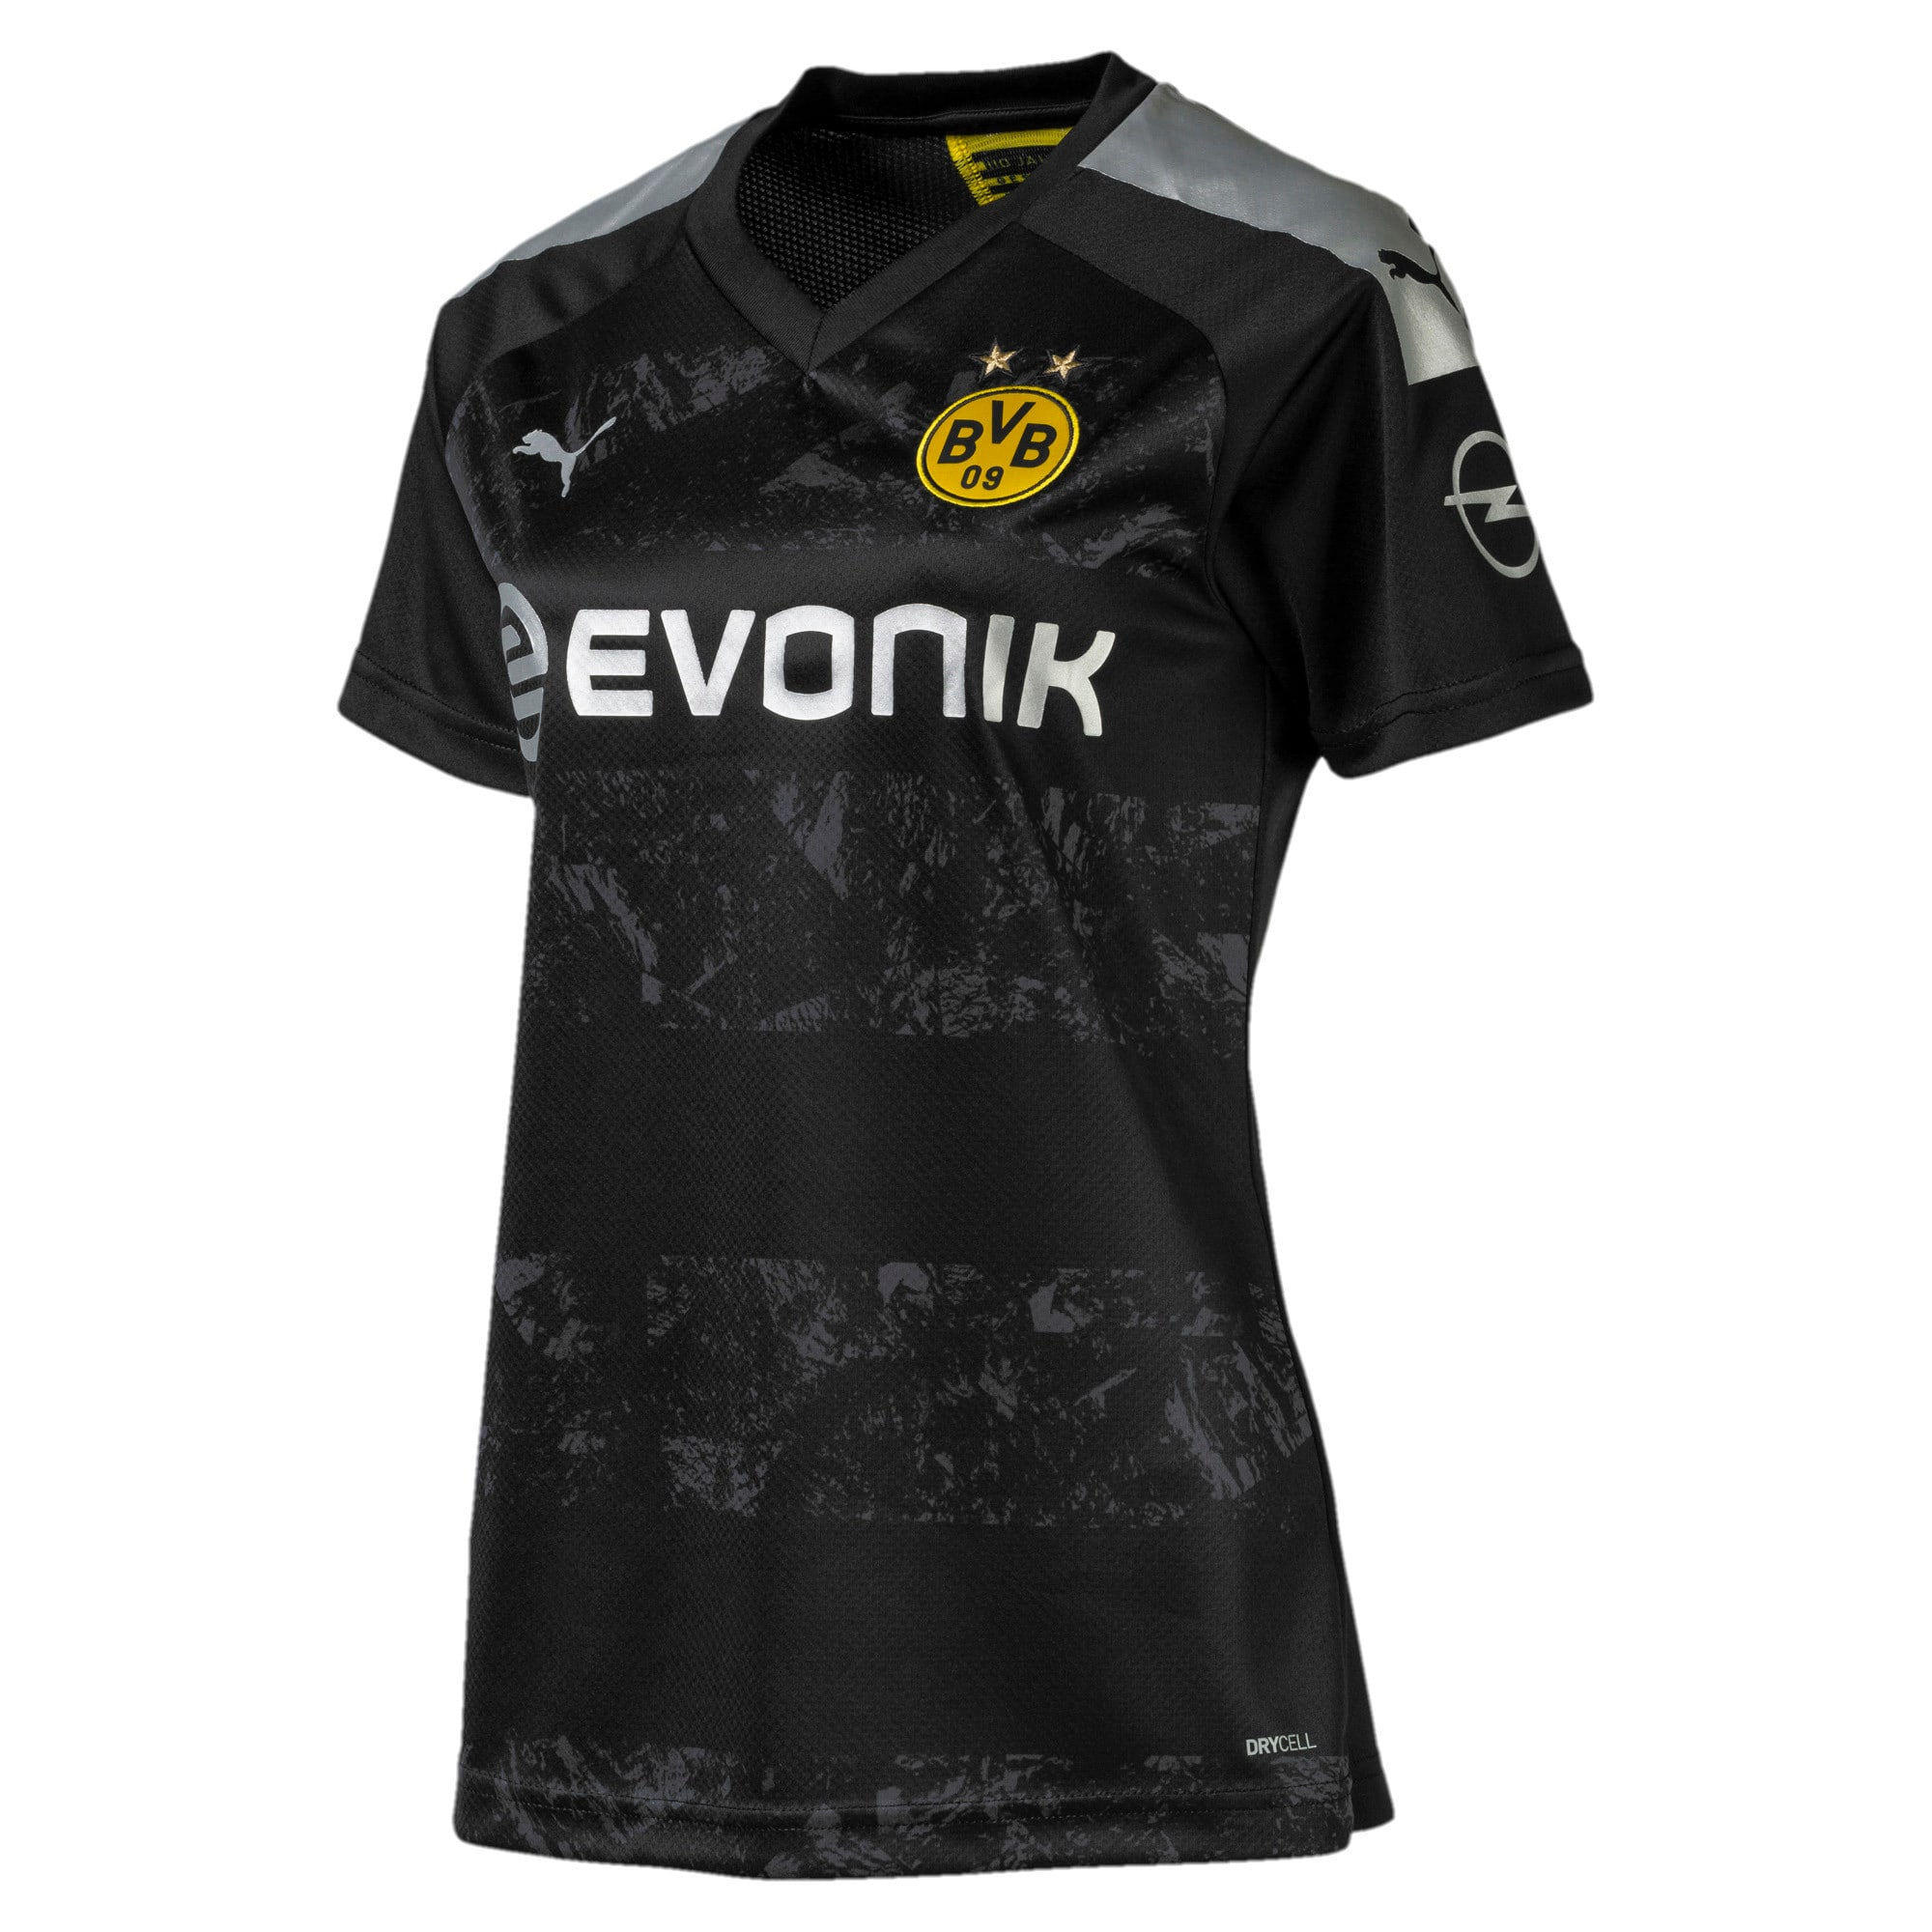 Thumbnail 1 of BVB Women's Away Replica Jersey, Puma Black, medium